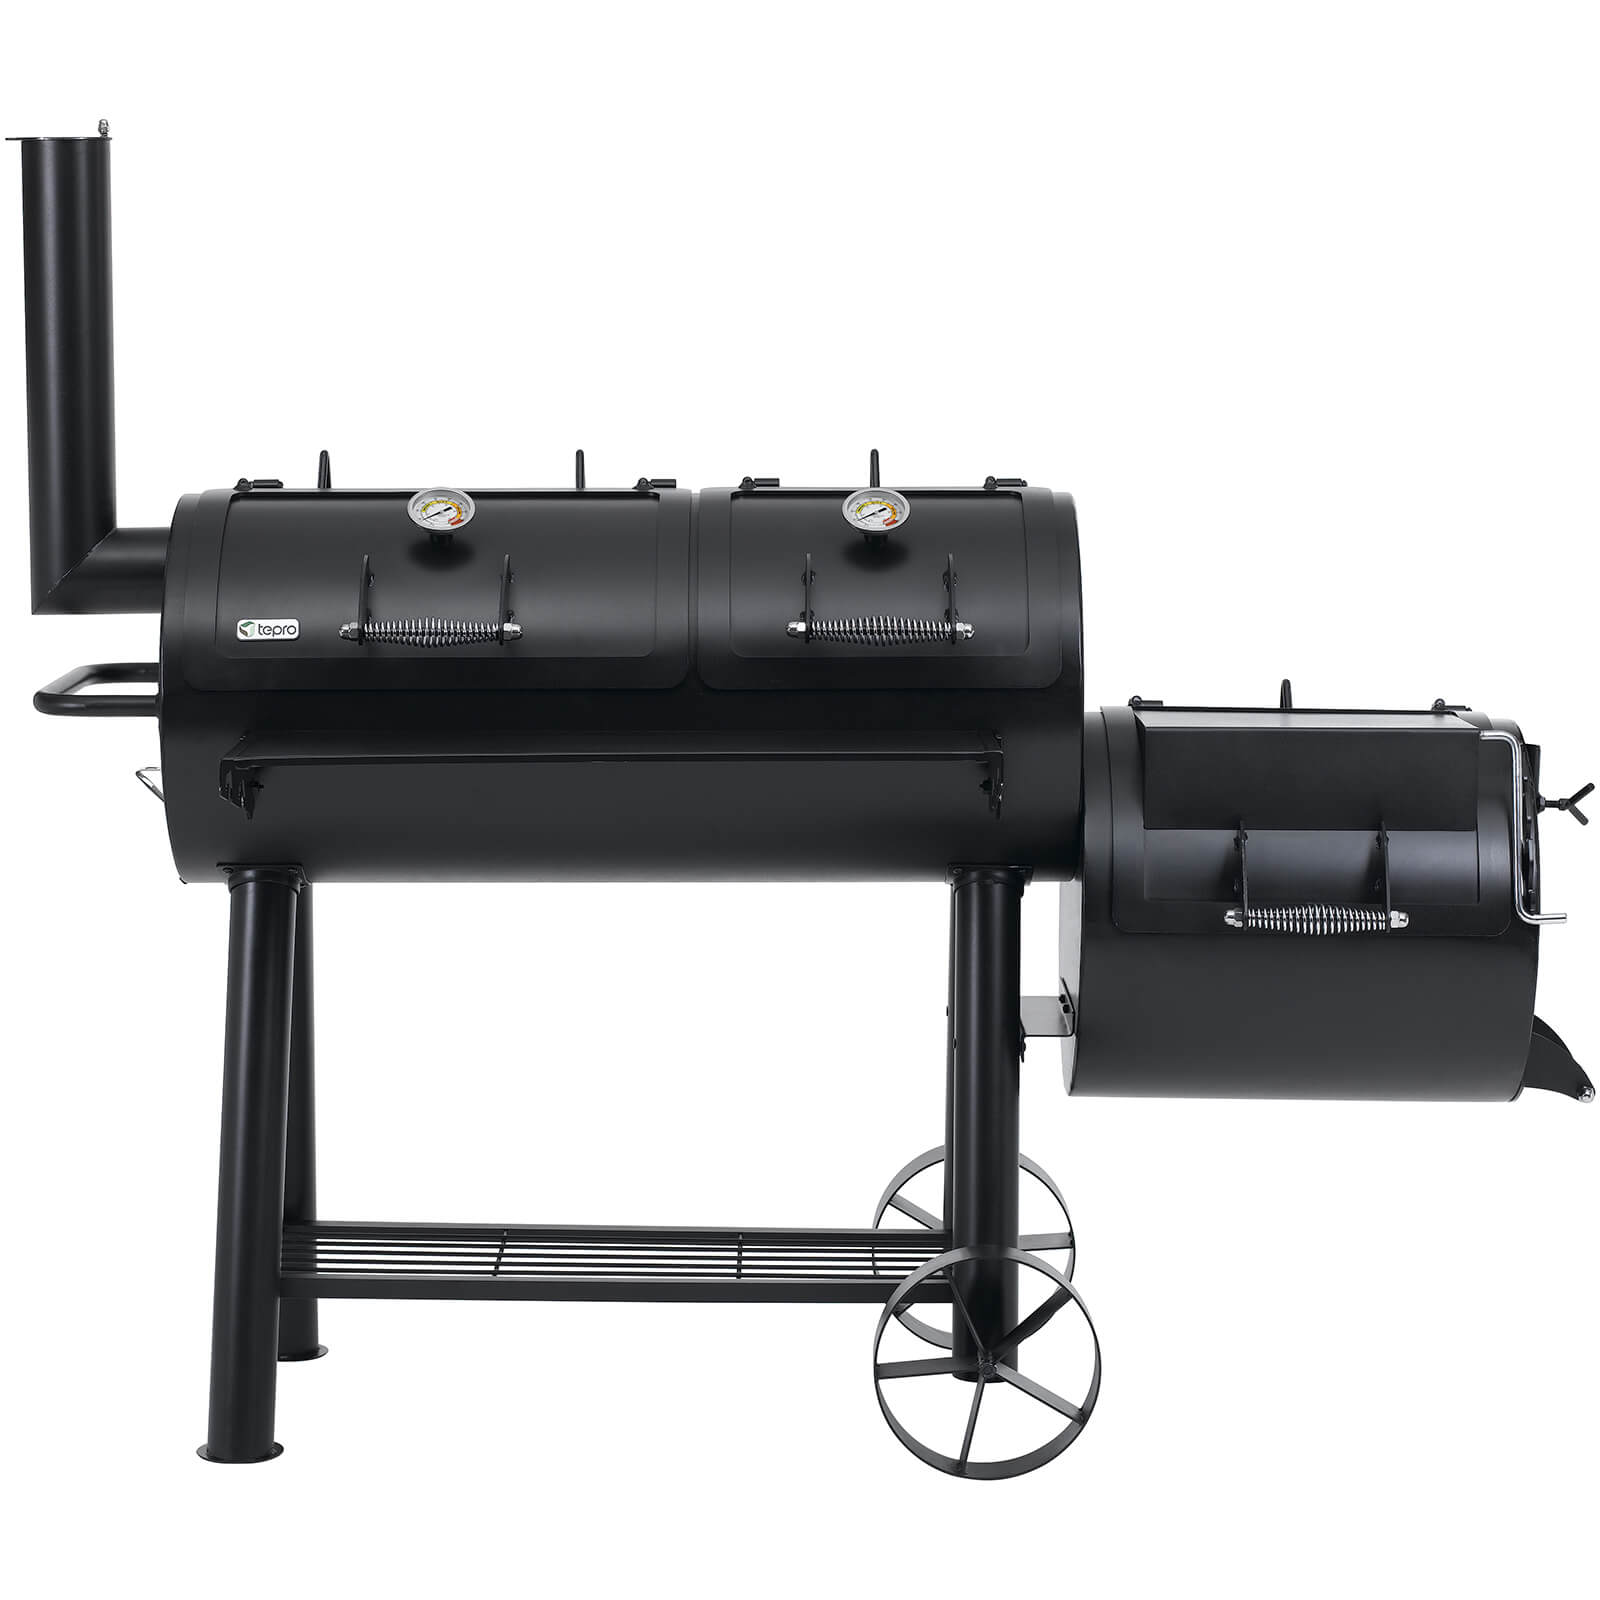 Tepro Heavy Duty Indianapolis Smoker - Black